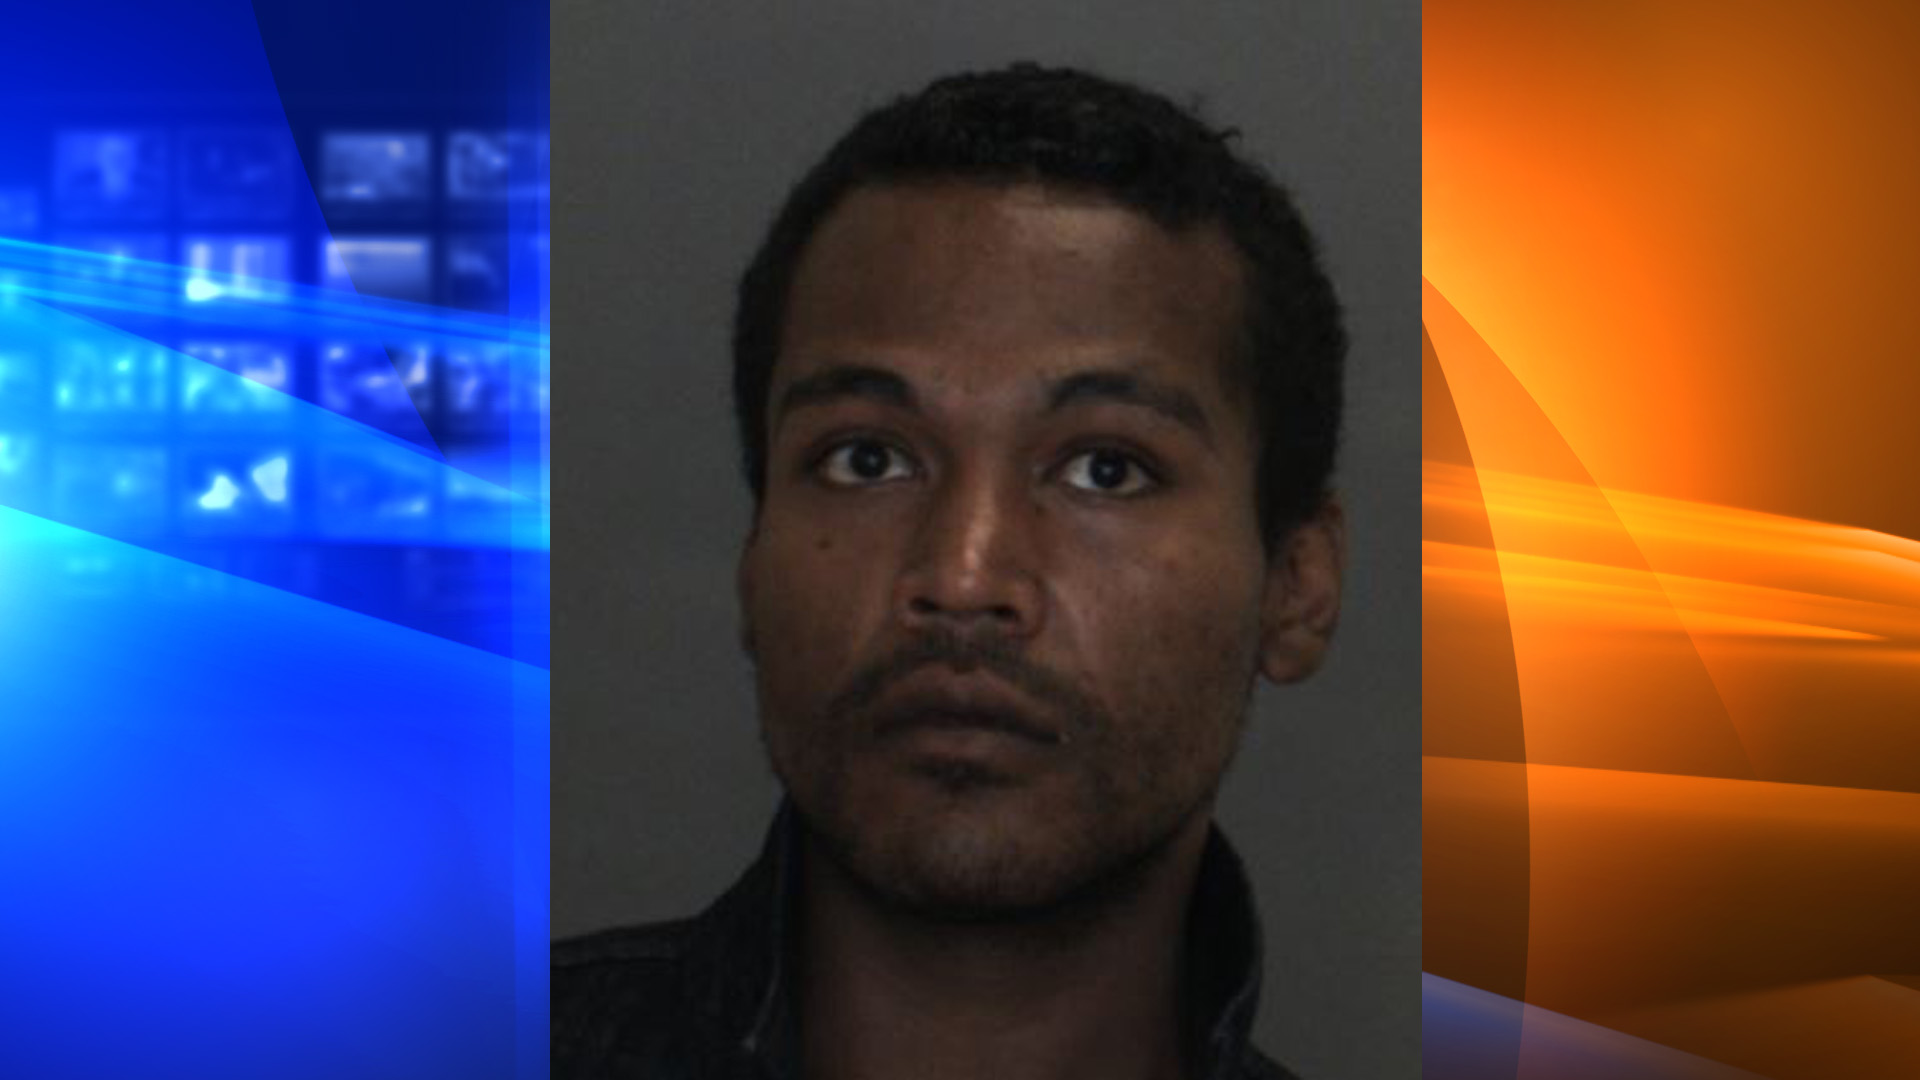 Troy Johnson, 29, was arrested in Apple Valley for possession of child pornography on Feb. 27, 2020. (San Bernardino County Sheriff-Coroner Department)